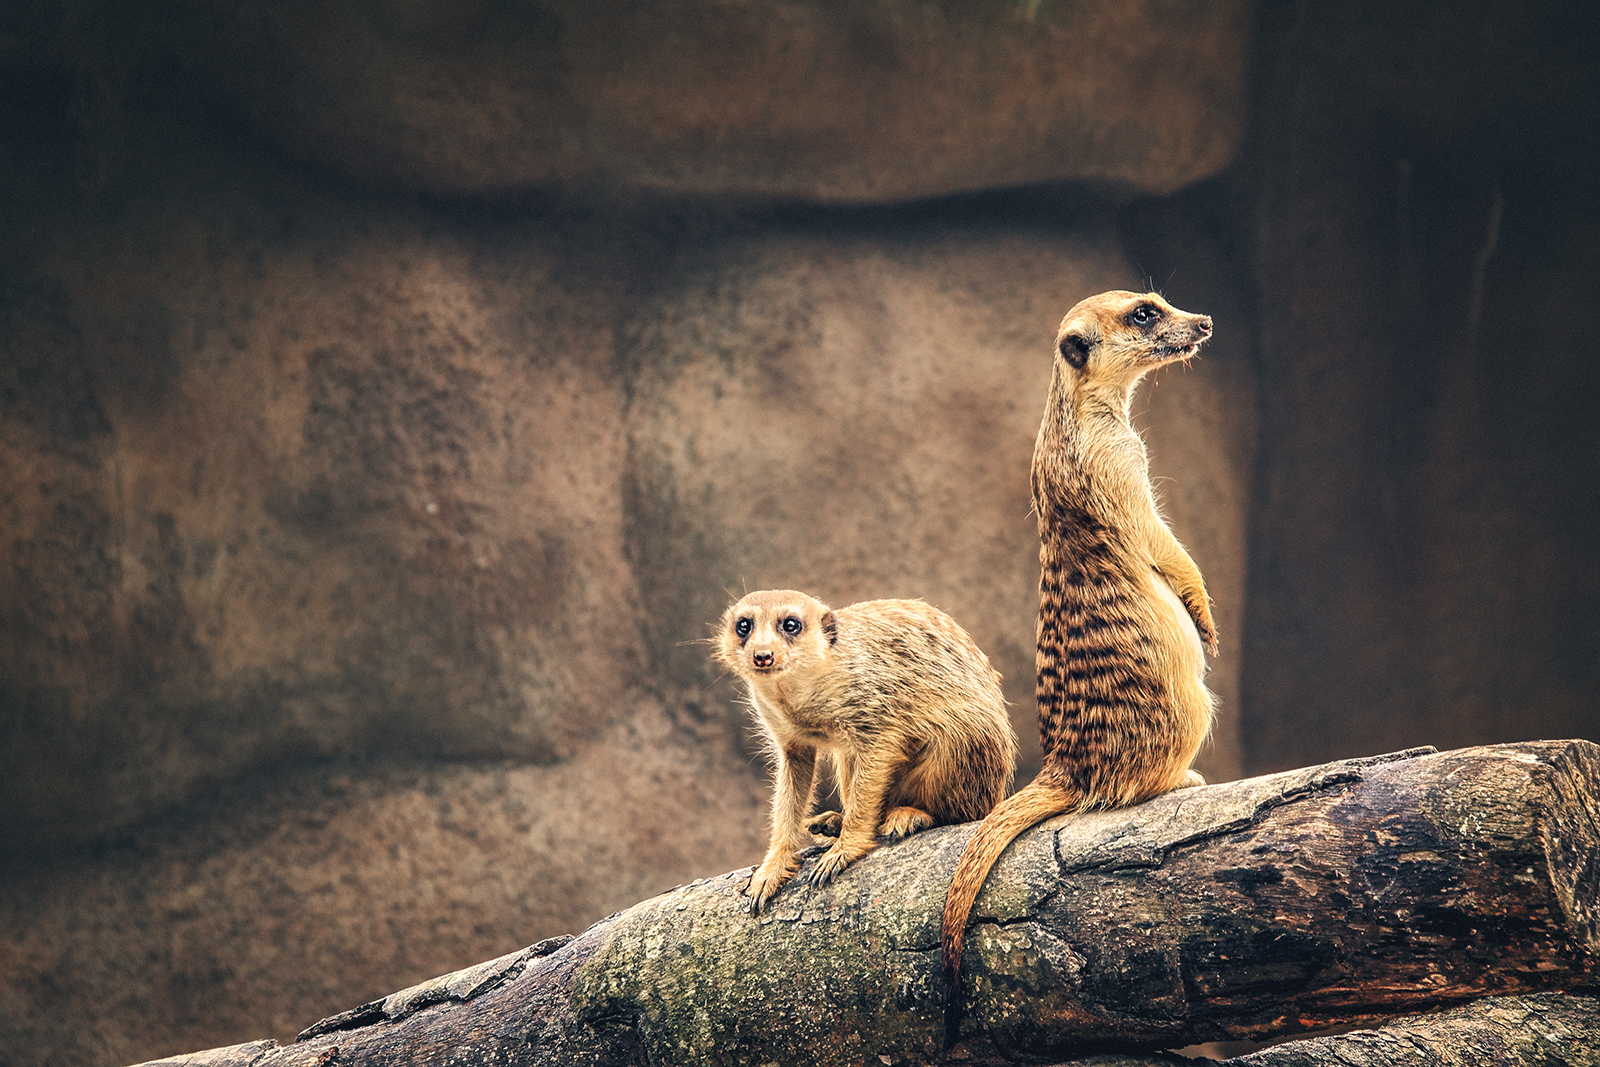 Portrait of a pair of Meerkats